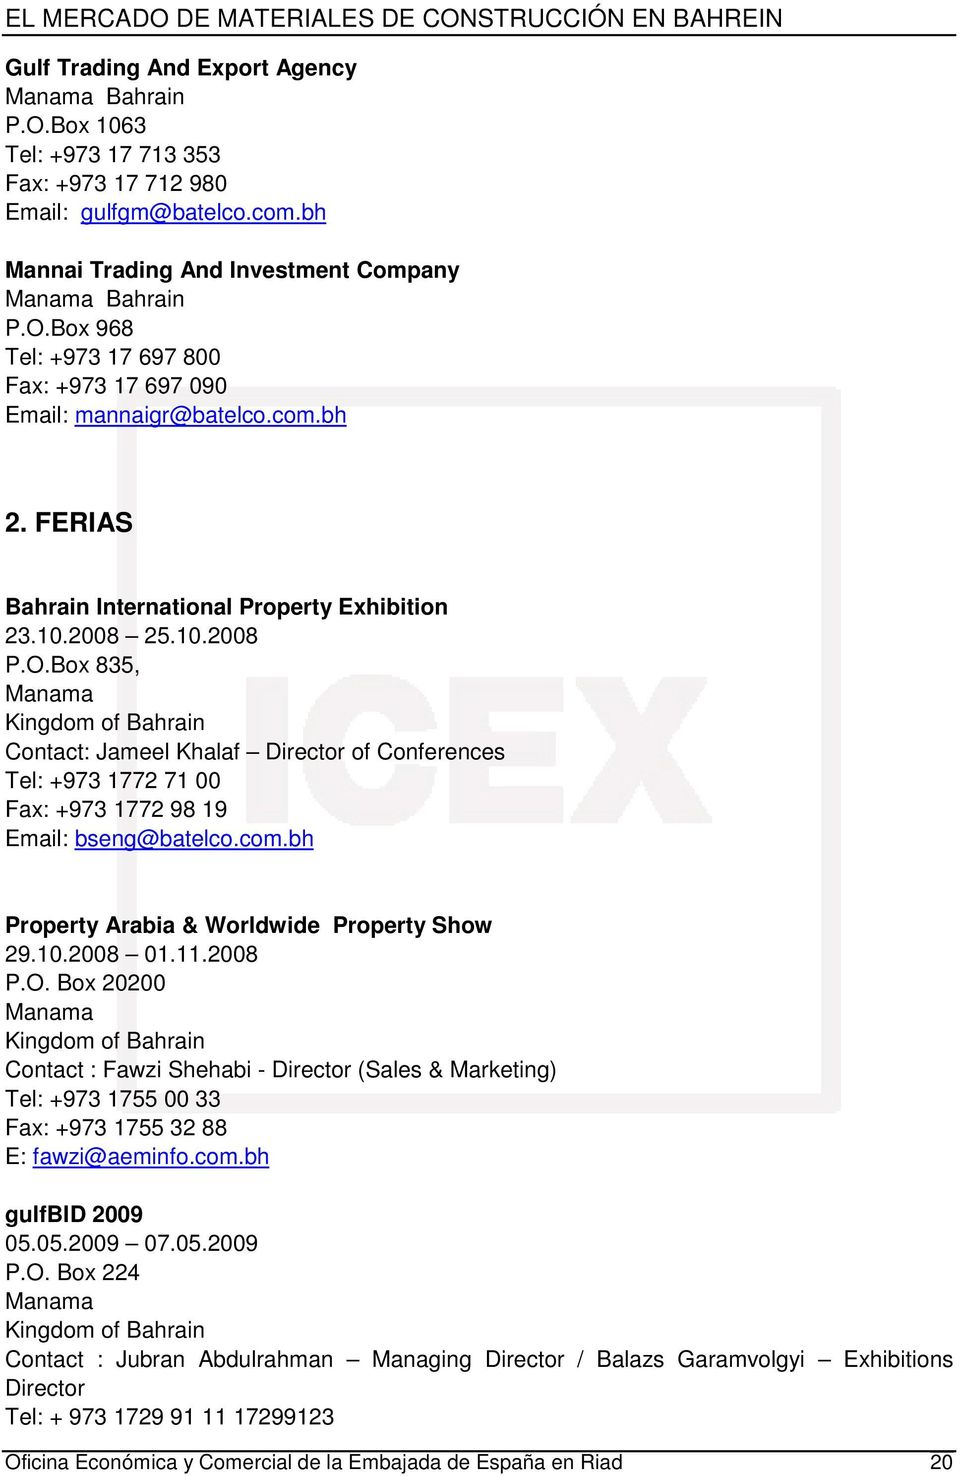 Box 835, Manama Kingdom of Bahrain Contact: Jameel Khalaf Director of Conferences Tel: +973 1772 71 00 Fax: +973 1772 98 19 Email: bseng@batelco.com.bh Property Arabia & Worldwide Property Show 29.10.